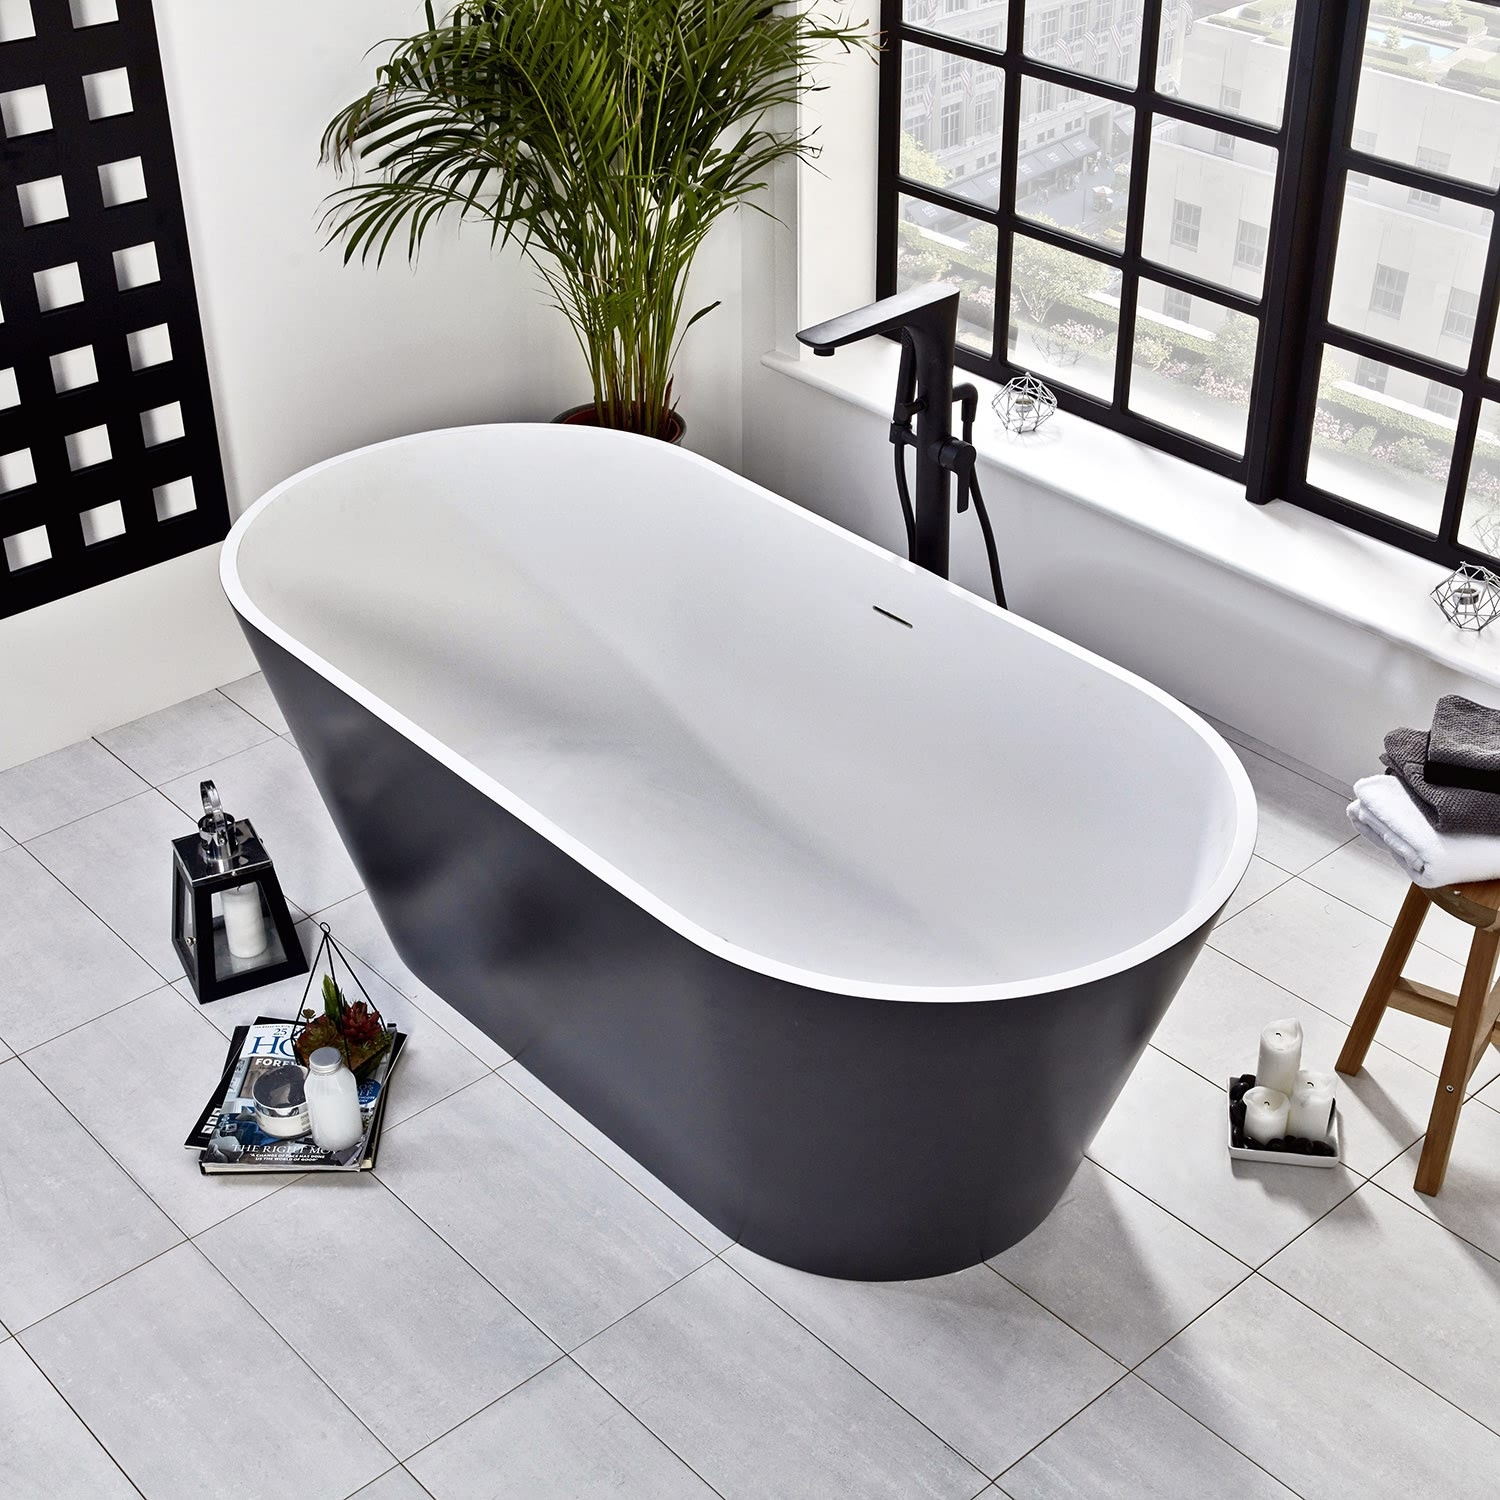 Verona Graphite Stone Freestanding Double Ended Bath 1700mm x 800mm - Black Outer-0